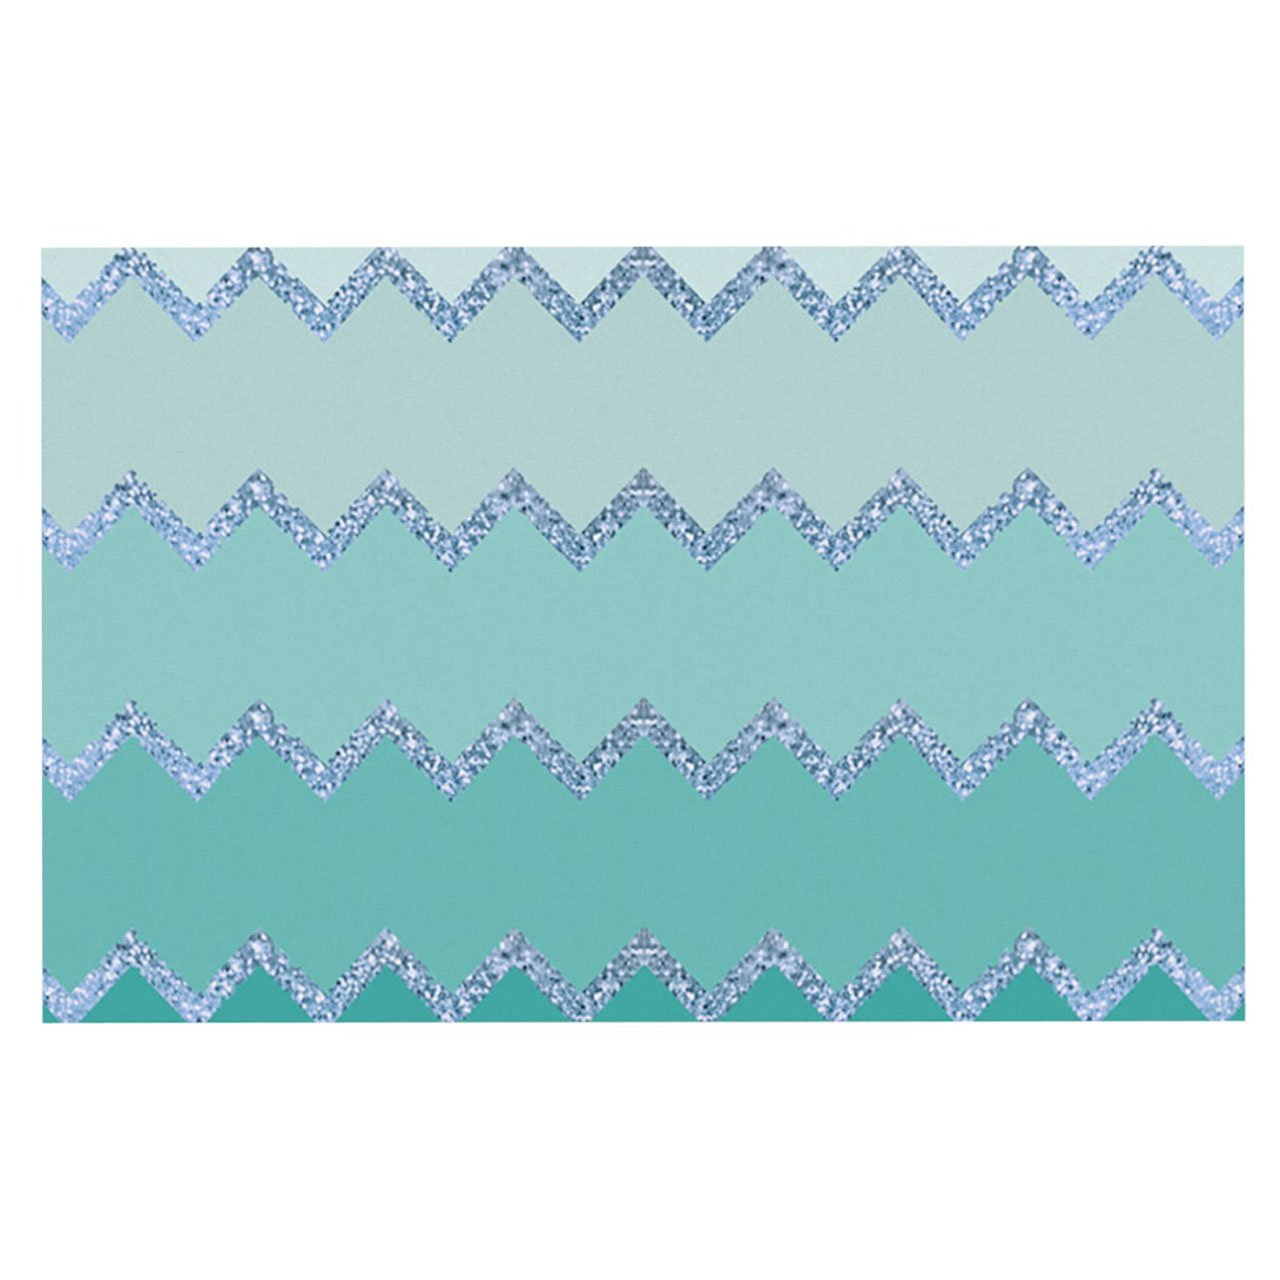 Kess InHouse Monika Strigel Avalon Mint Ombre  Aqua Green Pet Bowl Placemat for Dog and Cat Feeding Mat, 18-Inch by 13-Inch